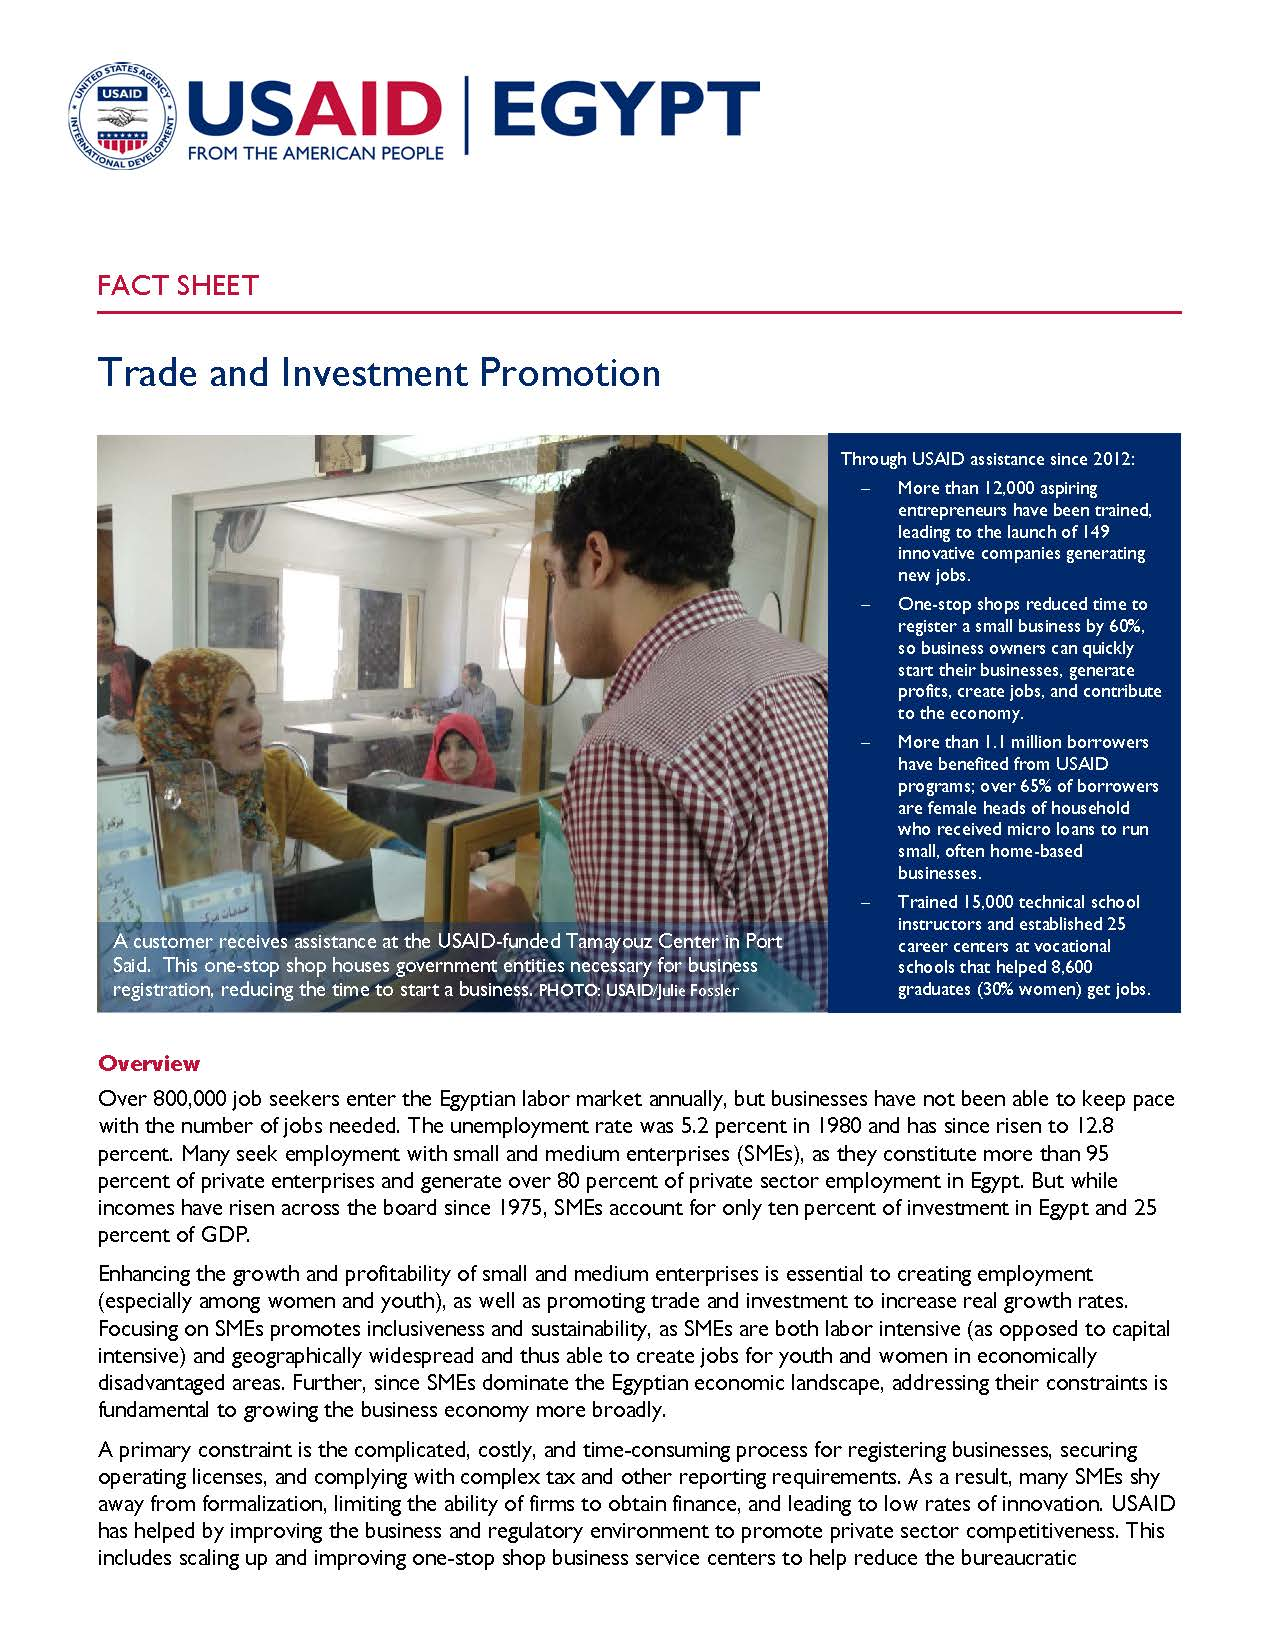 USAID/Egypt Trade Fact Sheet